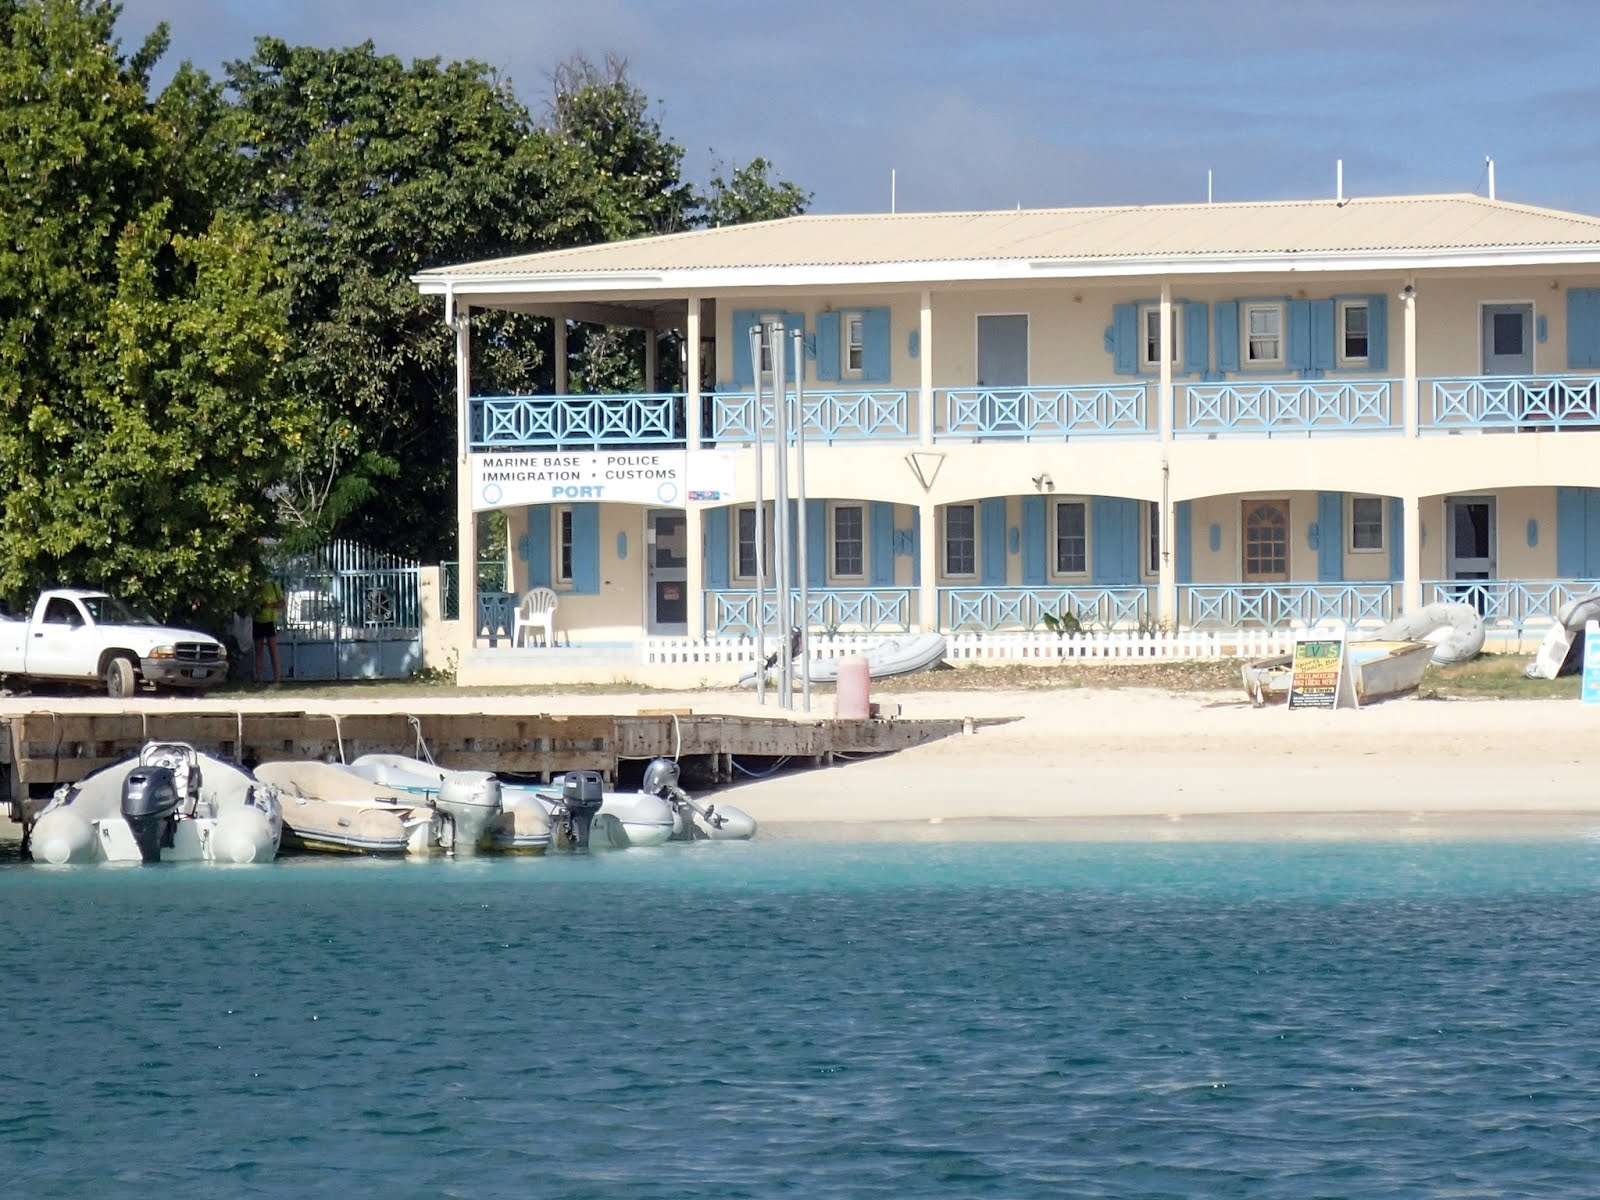 Anguilla Hotels On The Beach